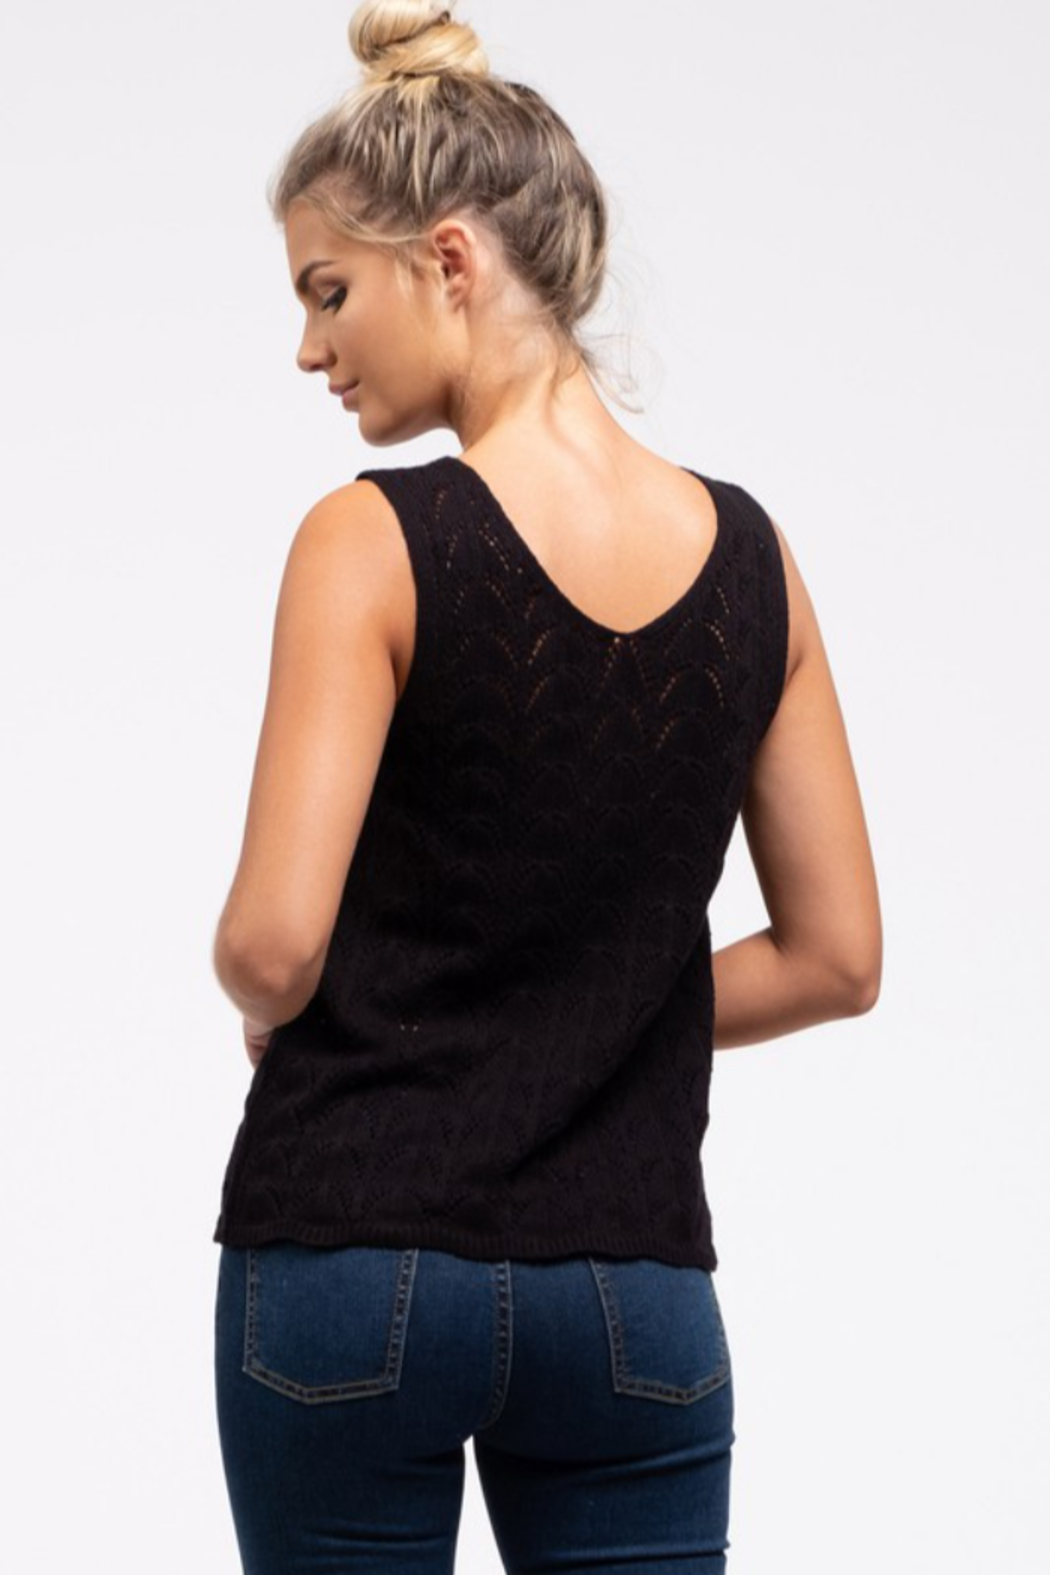 blu Pepper  V-Neck Sleeveless Sweater - Front Full Image